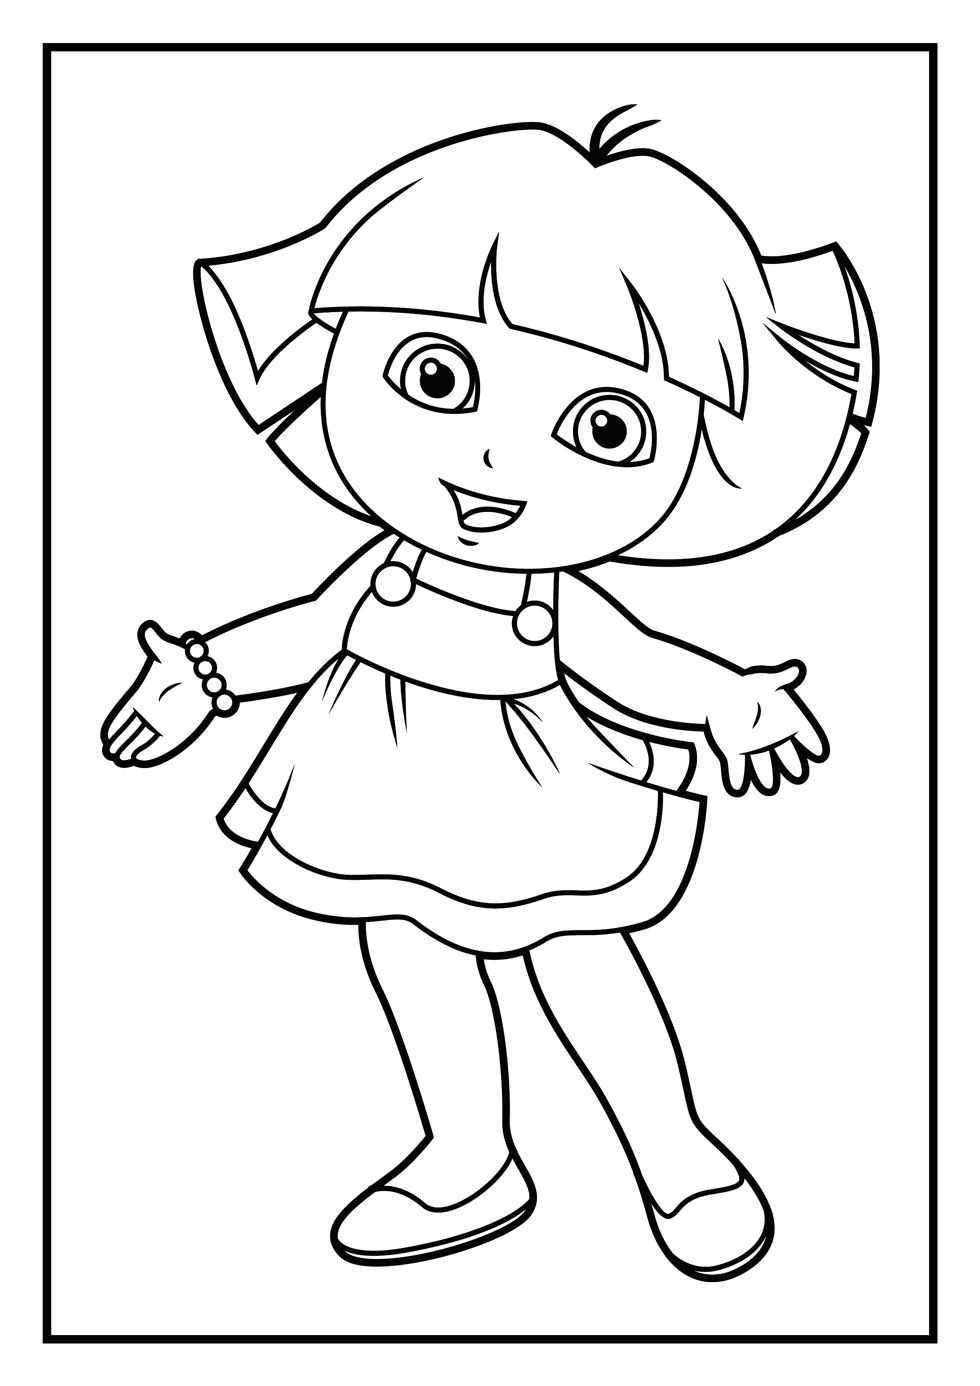 Dora The Explorer Coloring Pages 06